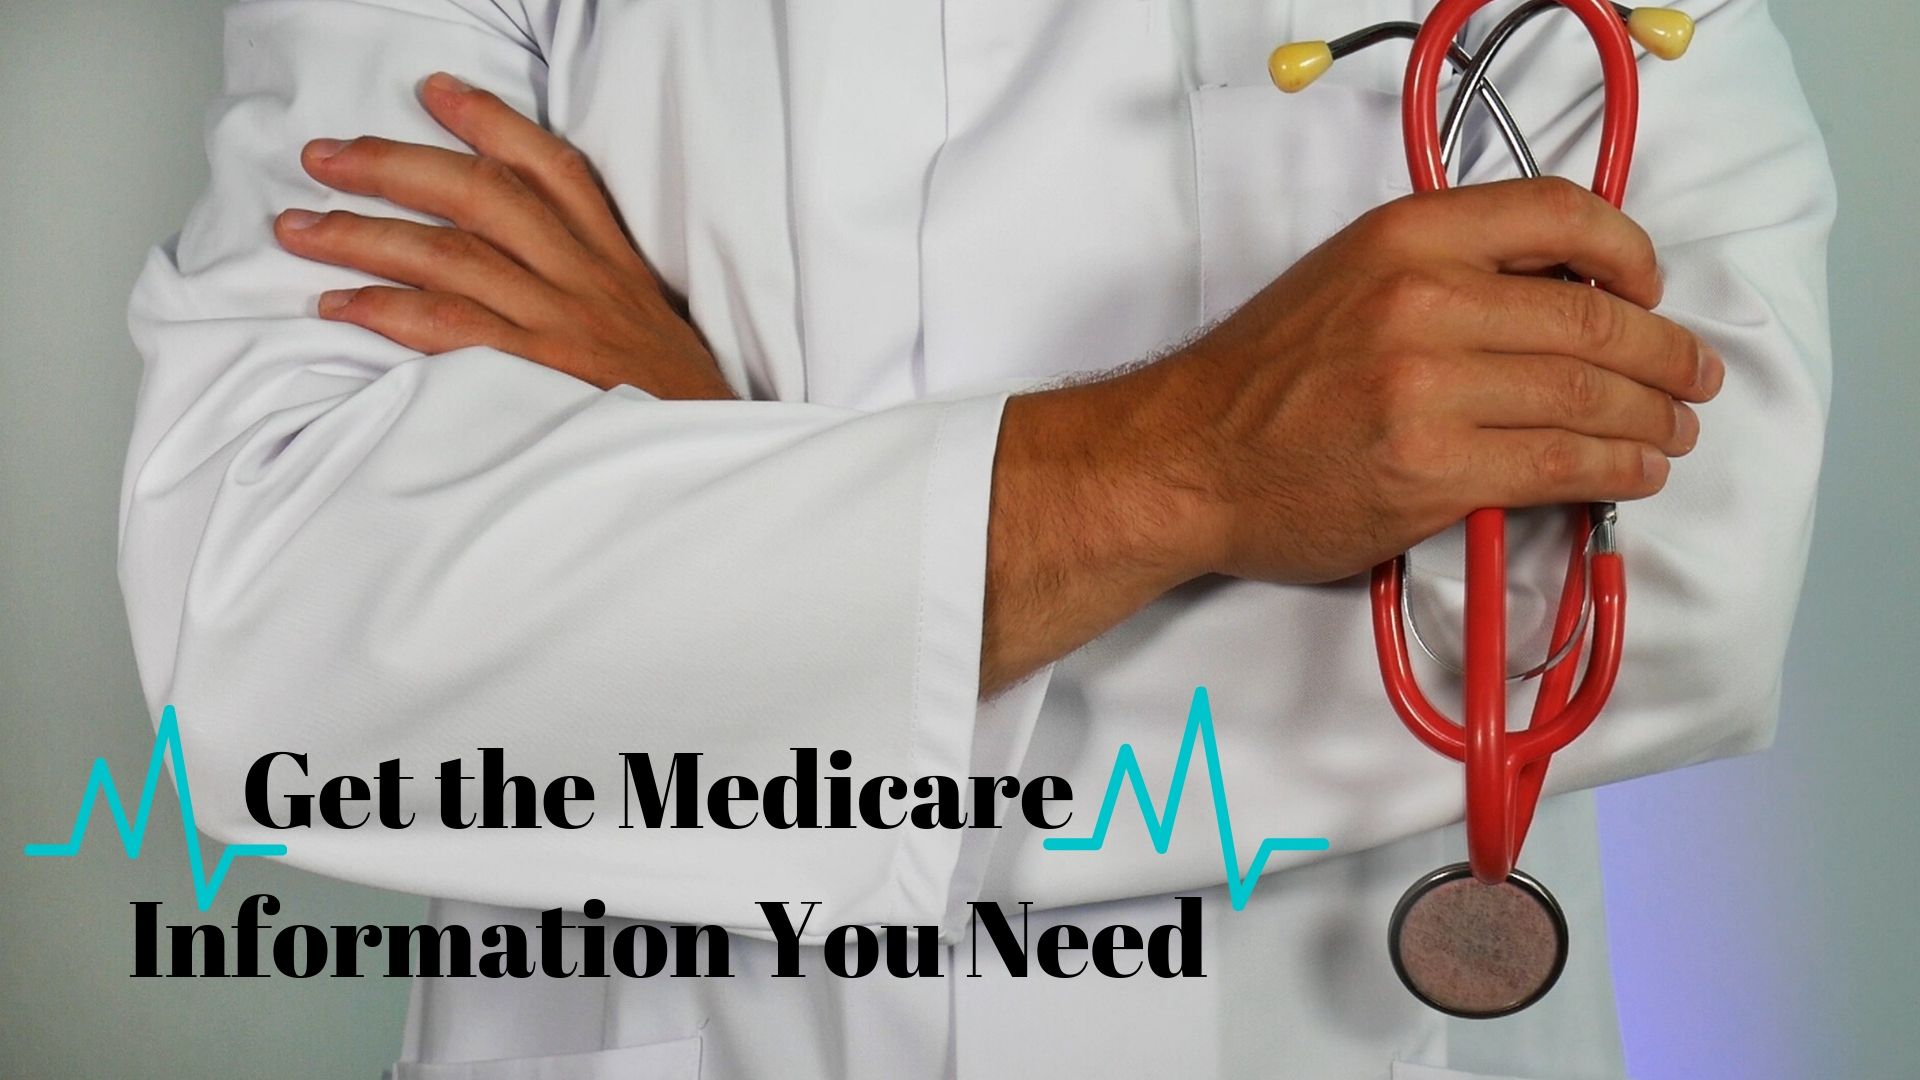 Get the Medicare Information You Need (With images